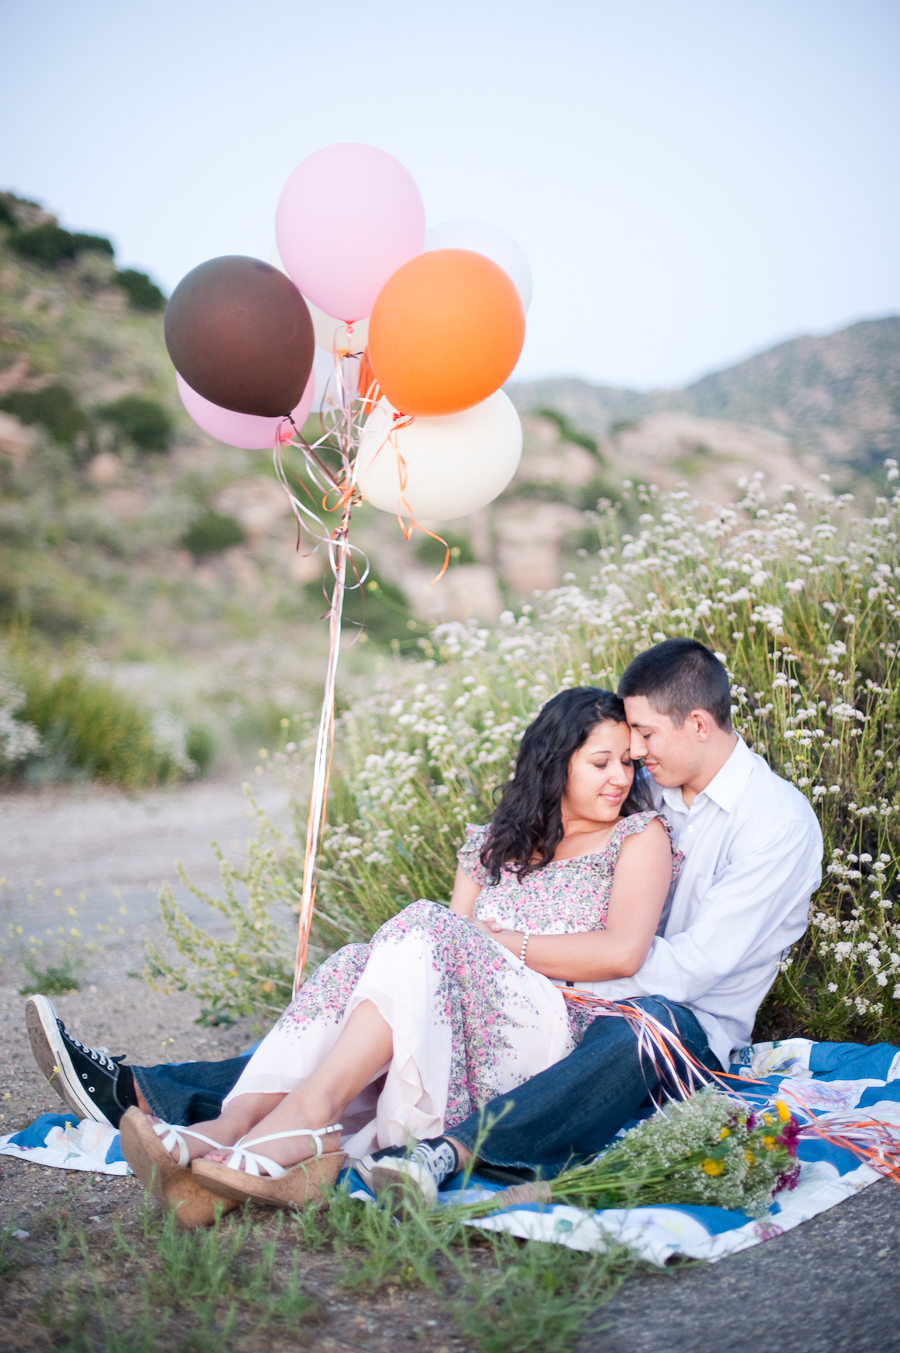 Image 4 of Andrea and Andres' Proposal Story